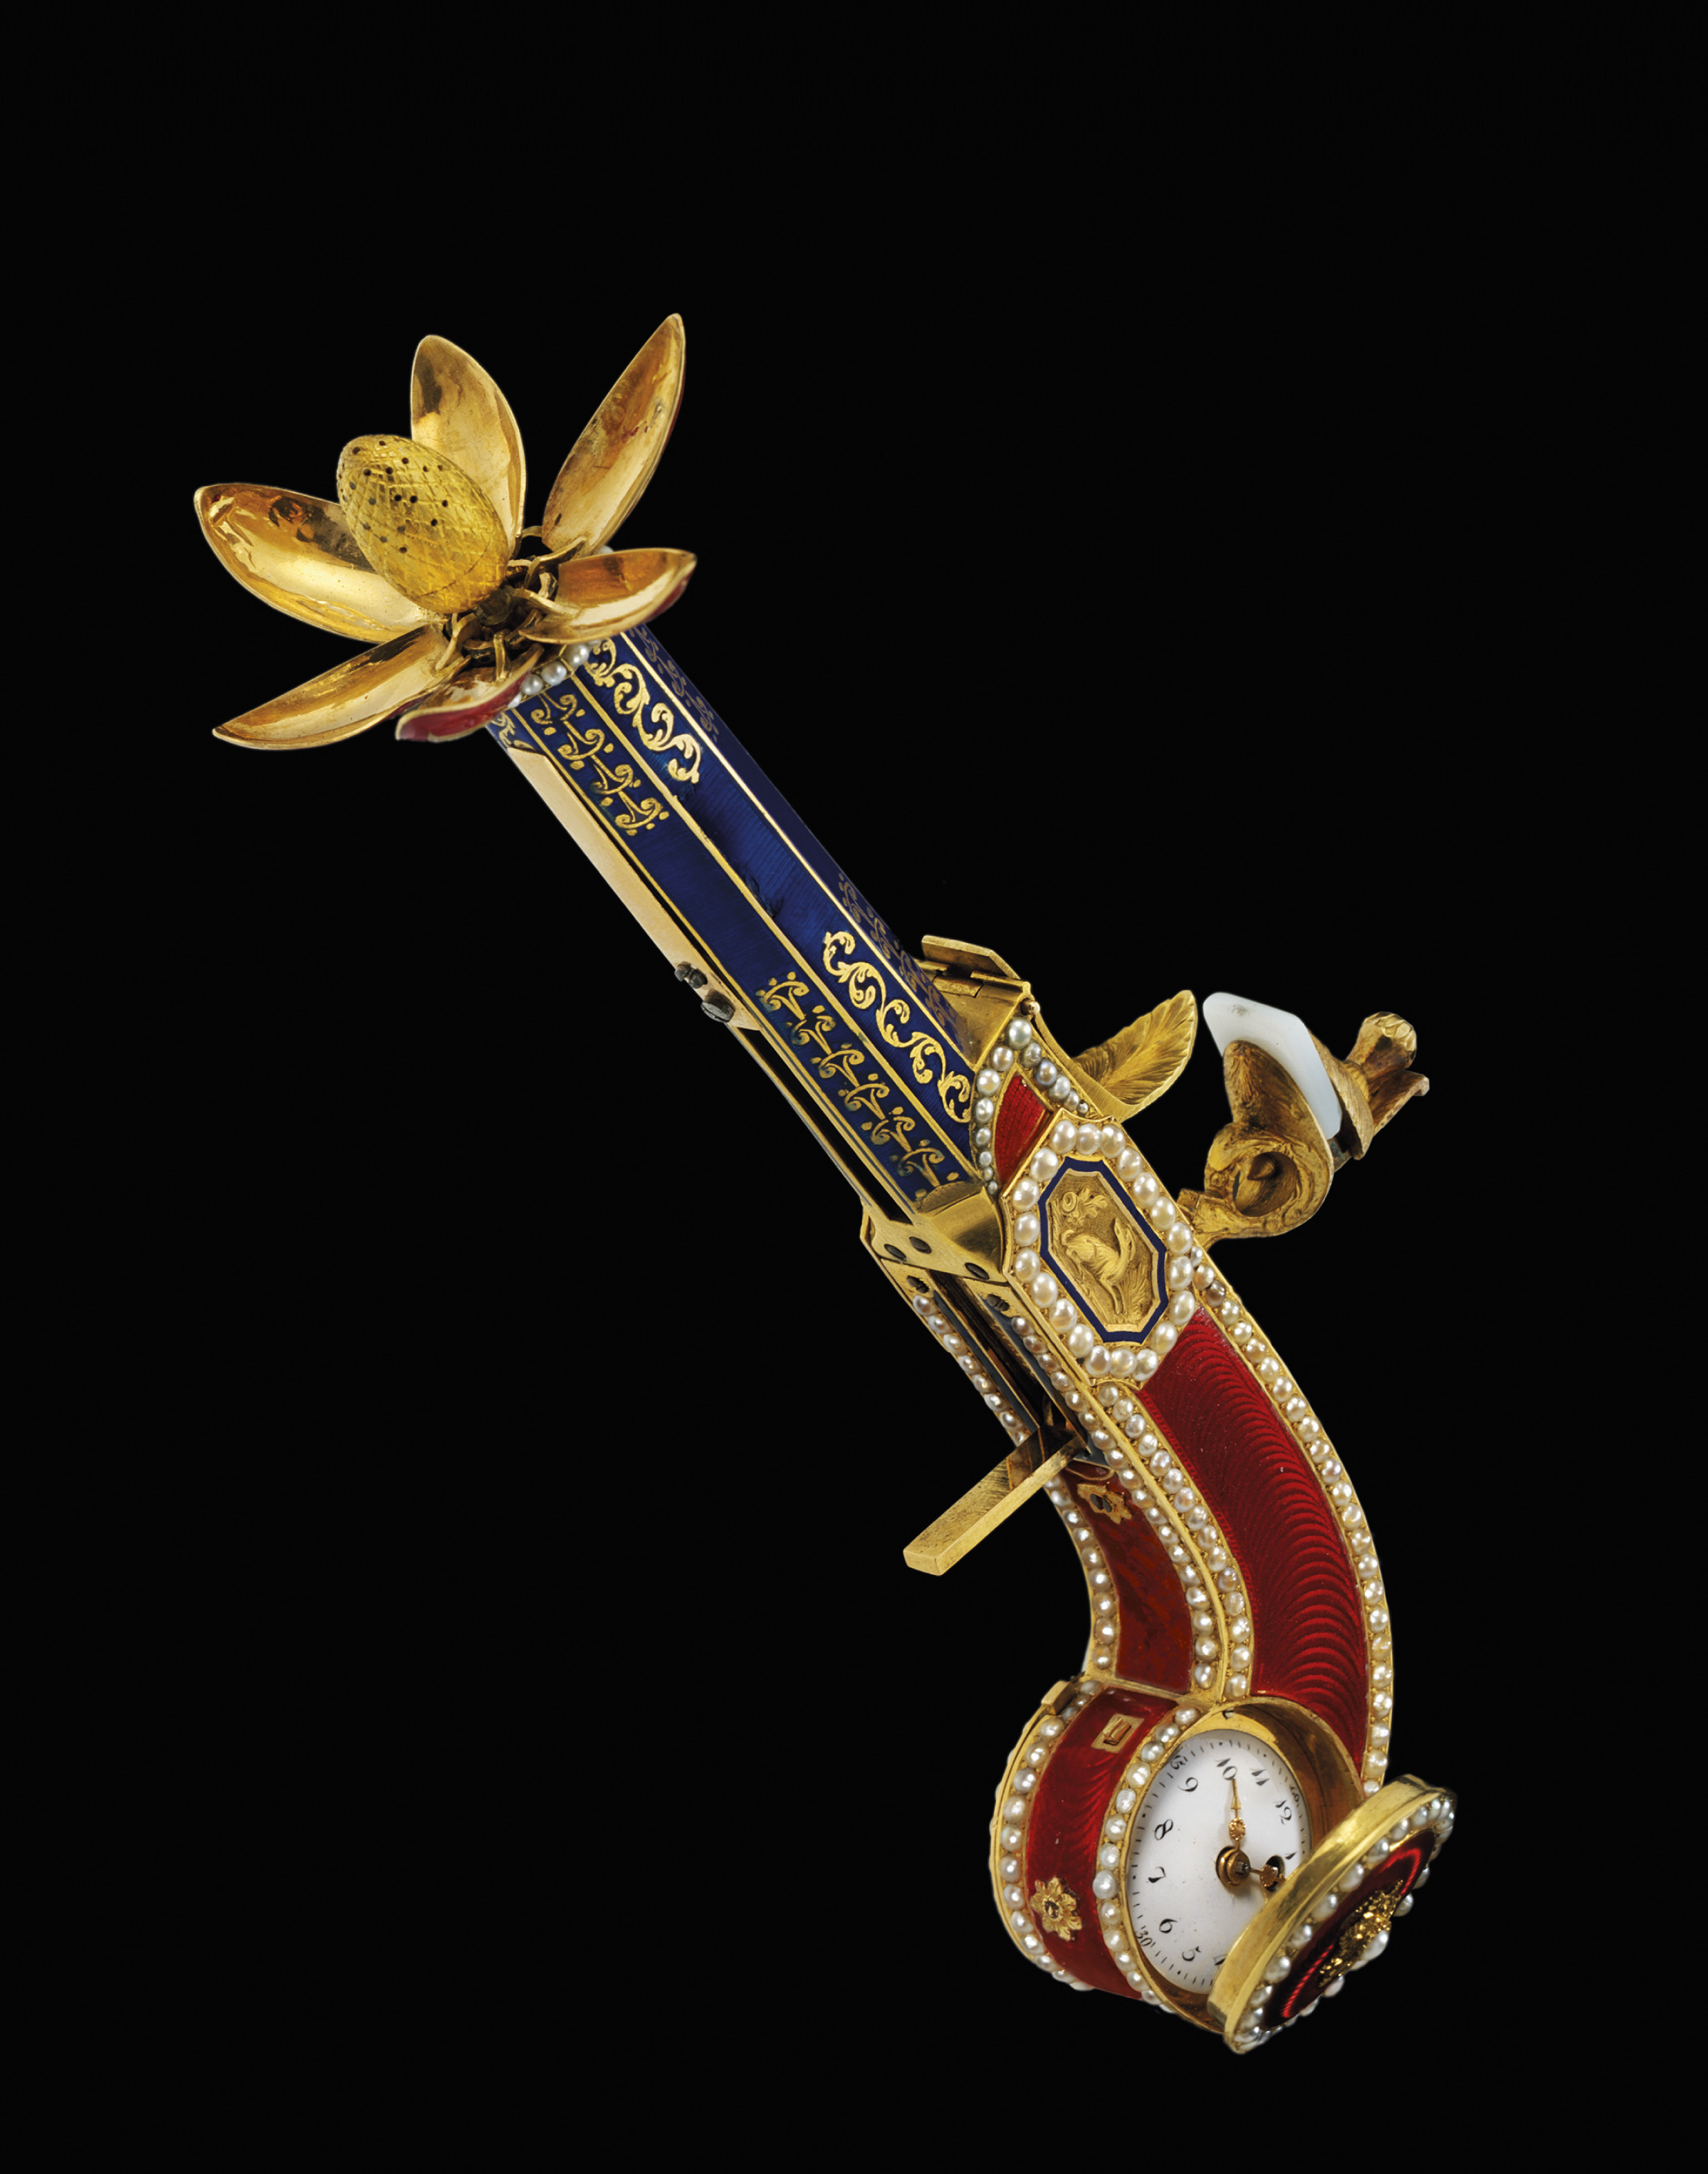 MOULINIÉ, BAUTTE & CIE. AN EXTREMELY RARE, IMPORTANT AND FINE GOLD, ENAMEL AND PEARL-SET FLINTLOCK PISTOL-FORM PERFUME SPRINKLER WITH CONCEALED WATCH, MADE FOR THE CHINESE MARKET